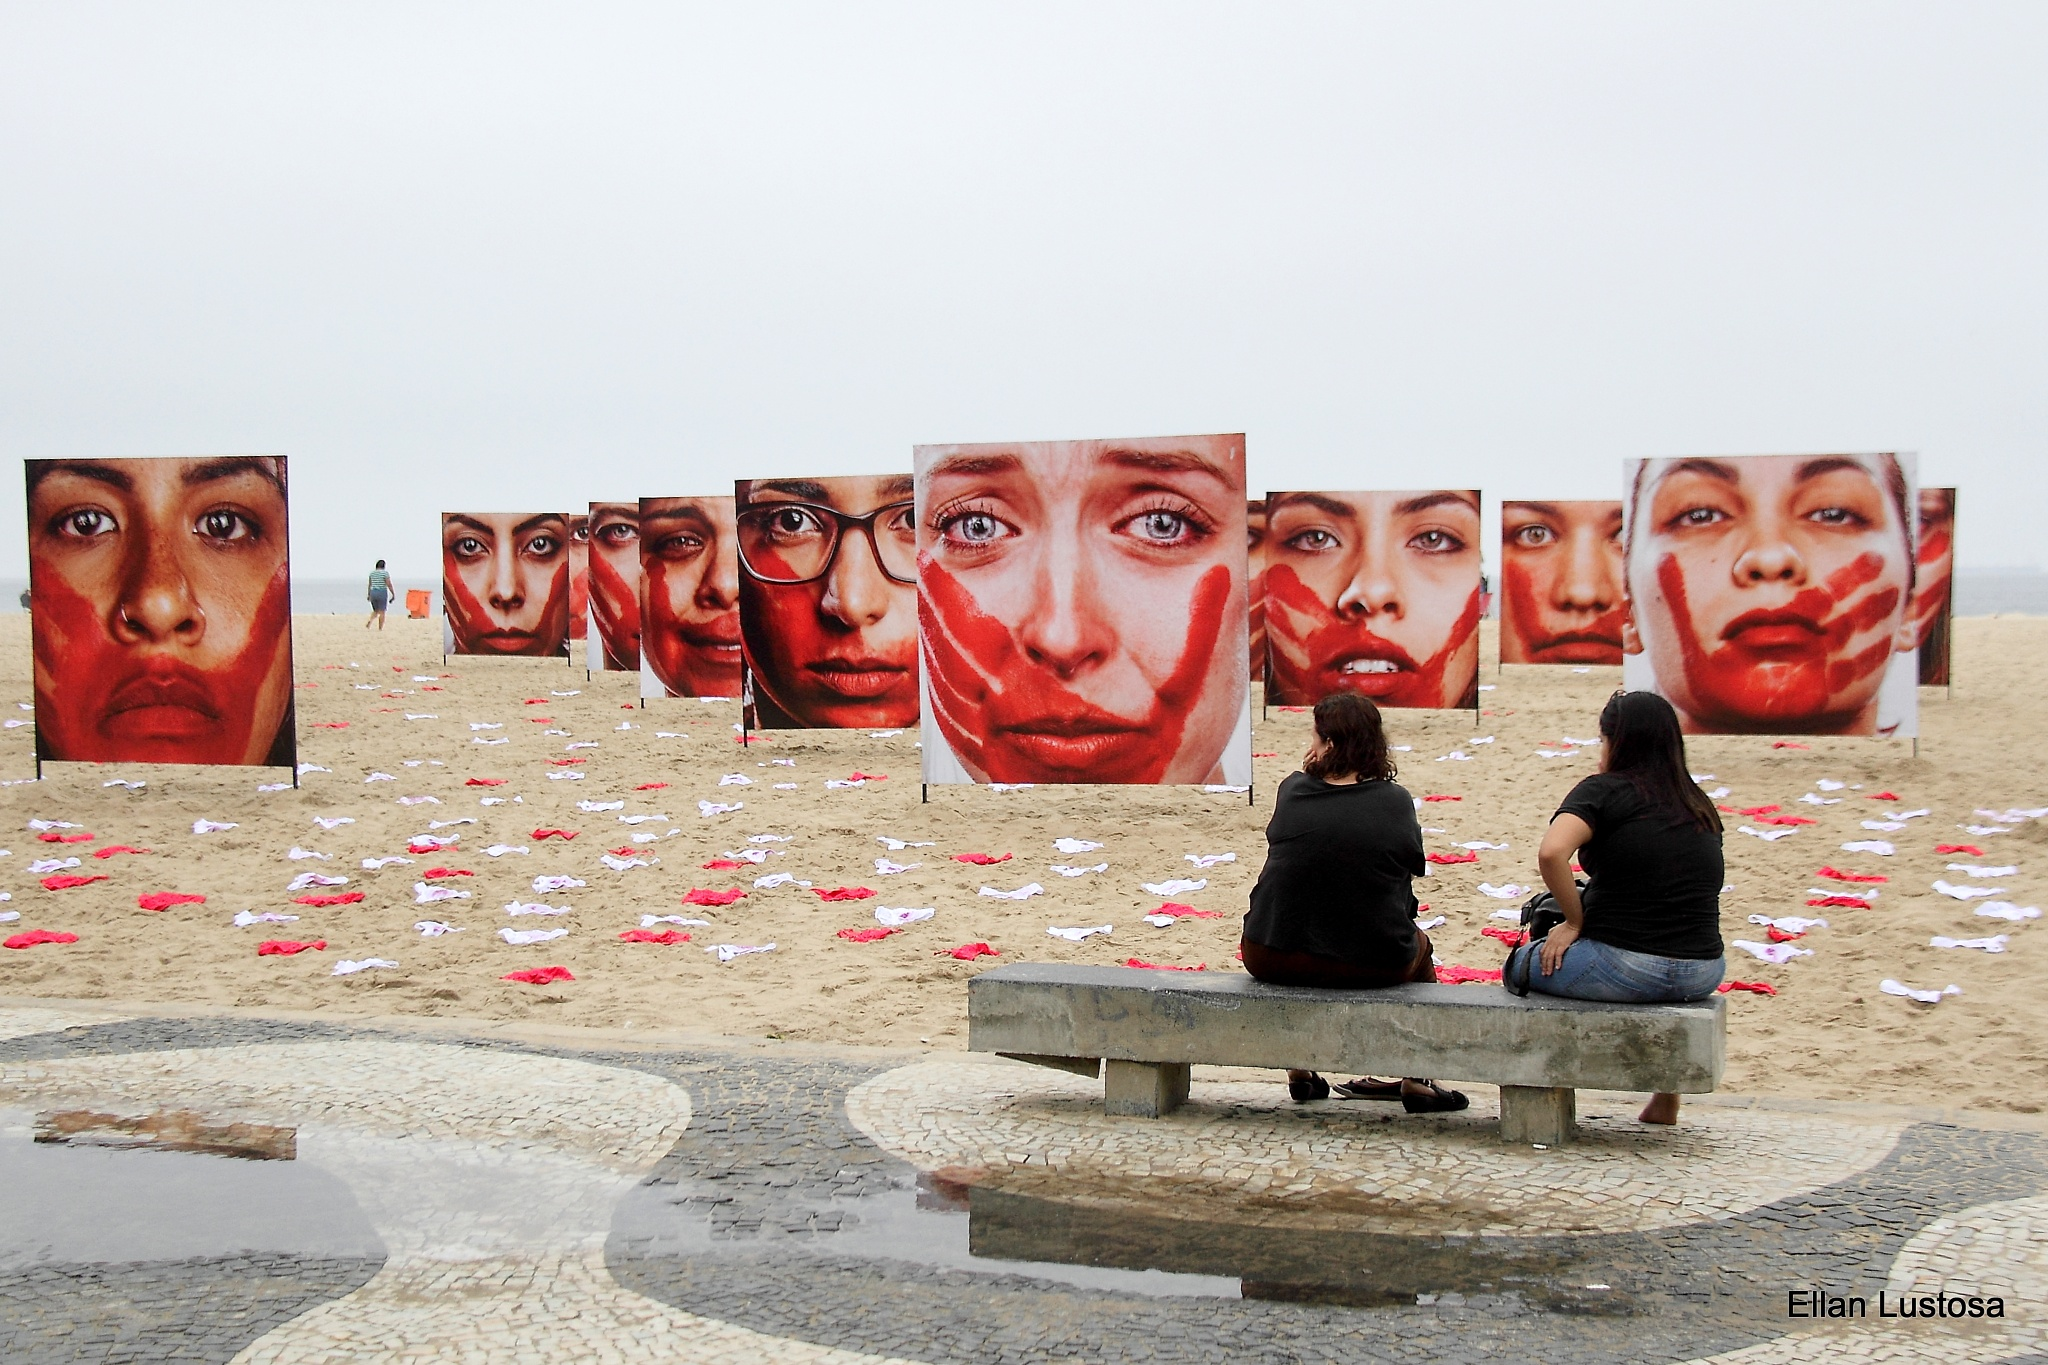 PROTEST AGAINST RAPES IN COPACABANA by Ellan Lustosa Photojournalist